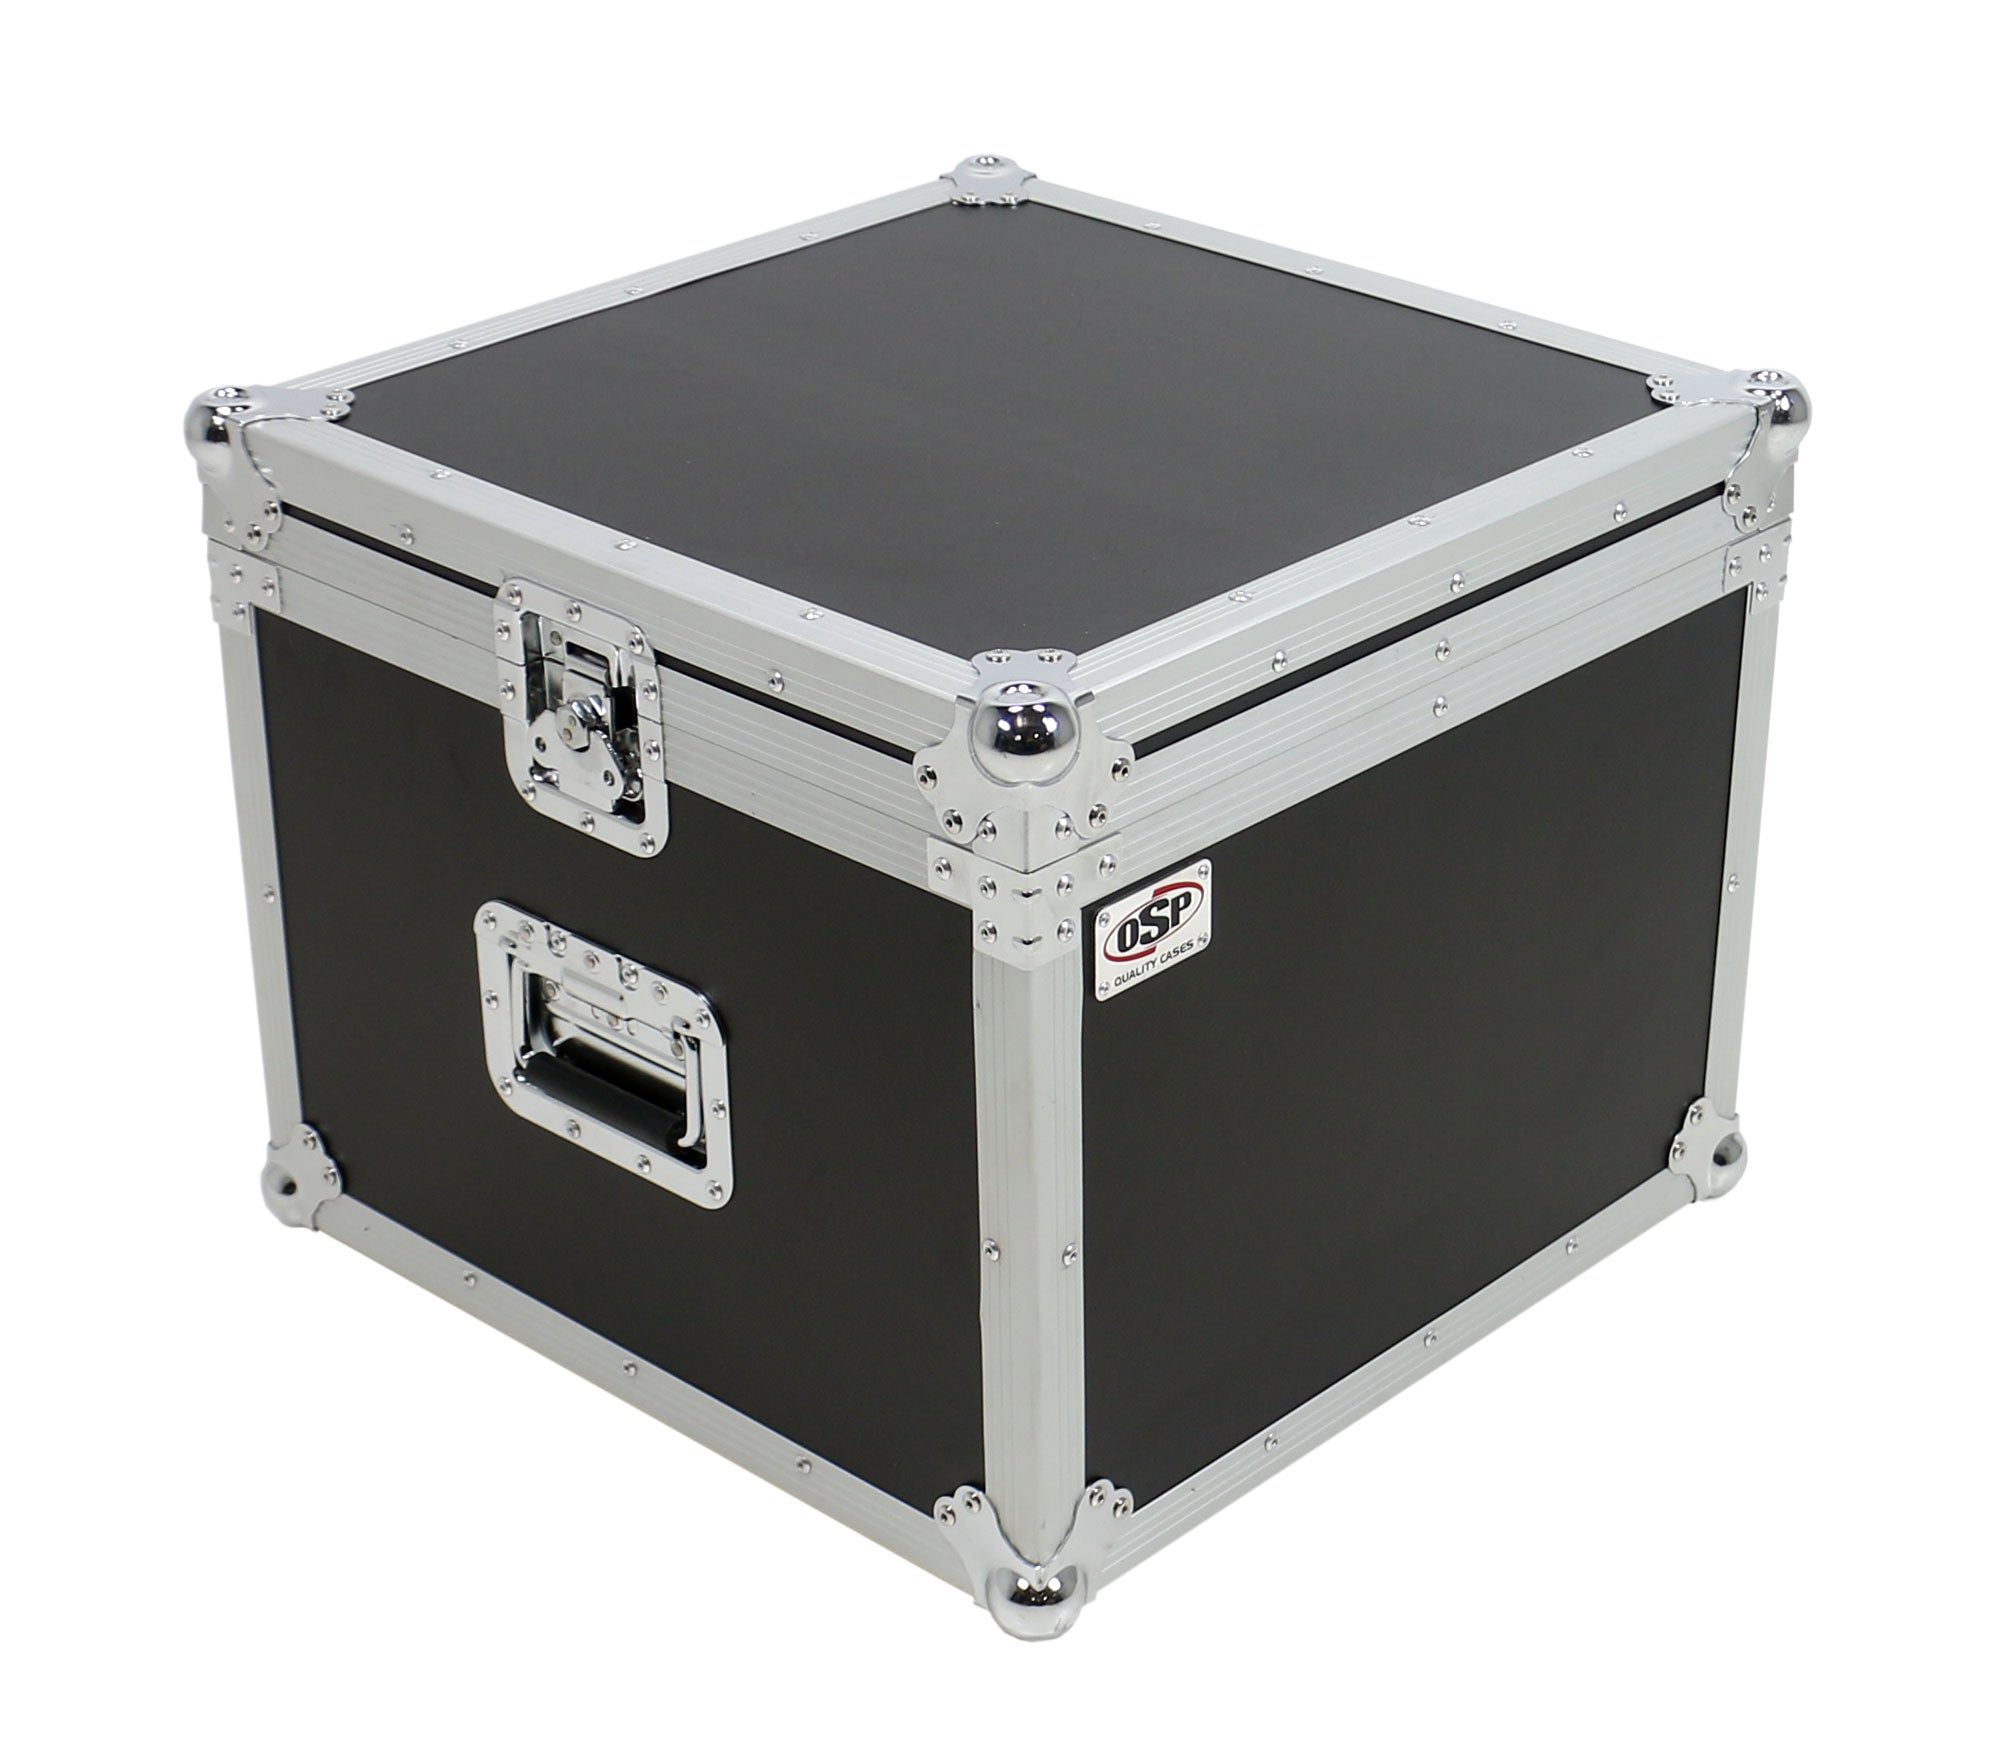 OSP PAR-CASE-4 Universal ATA Flight Case for 4 LED PAR CANS, Without Casters